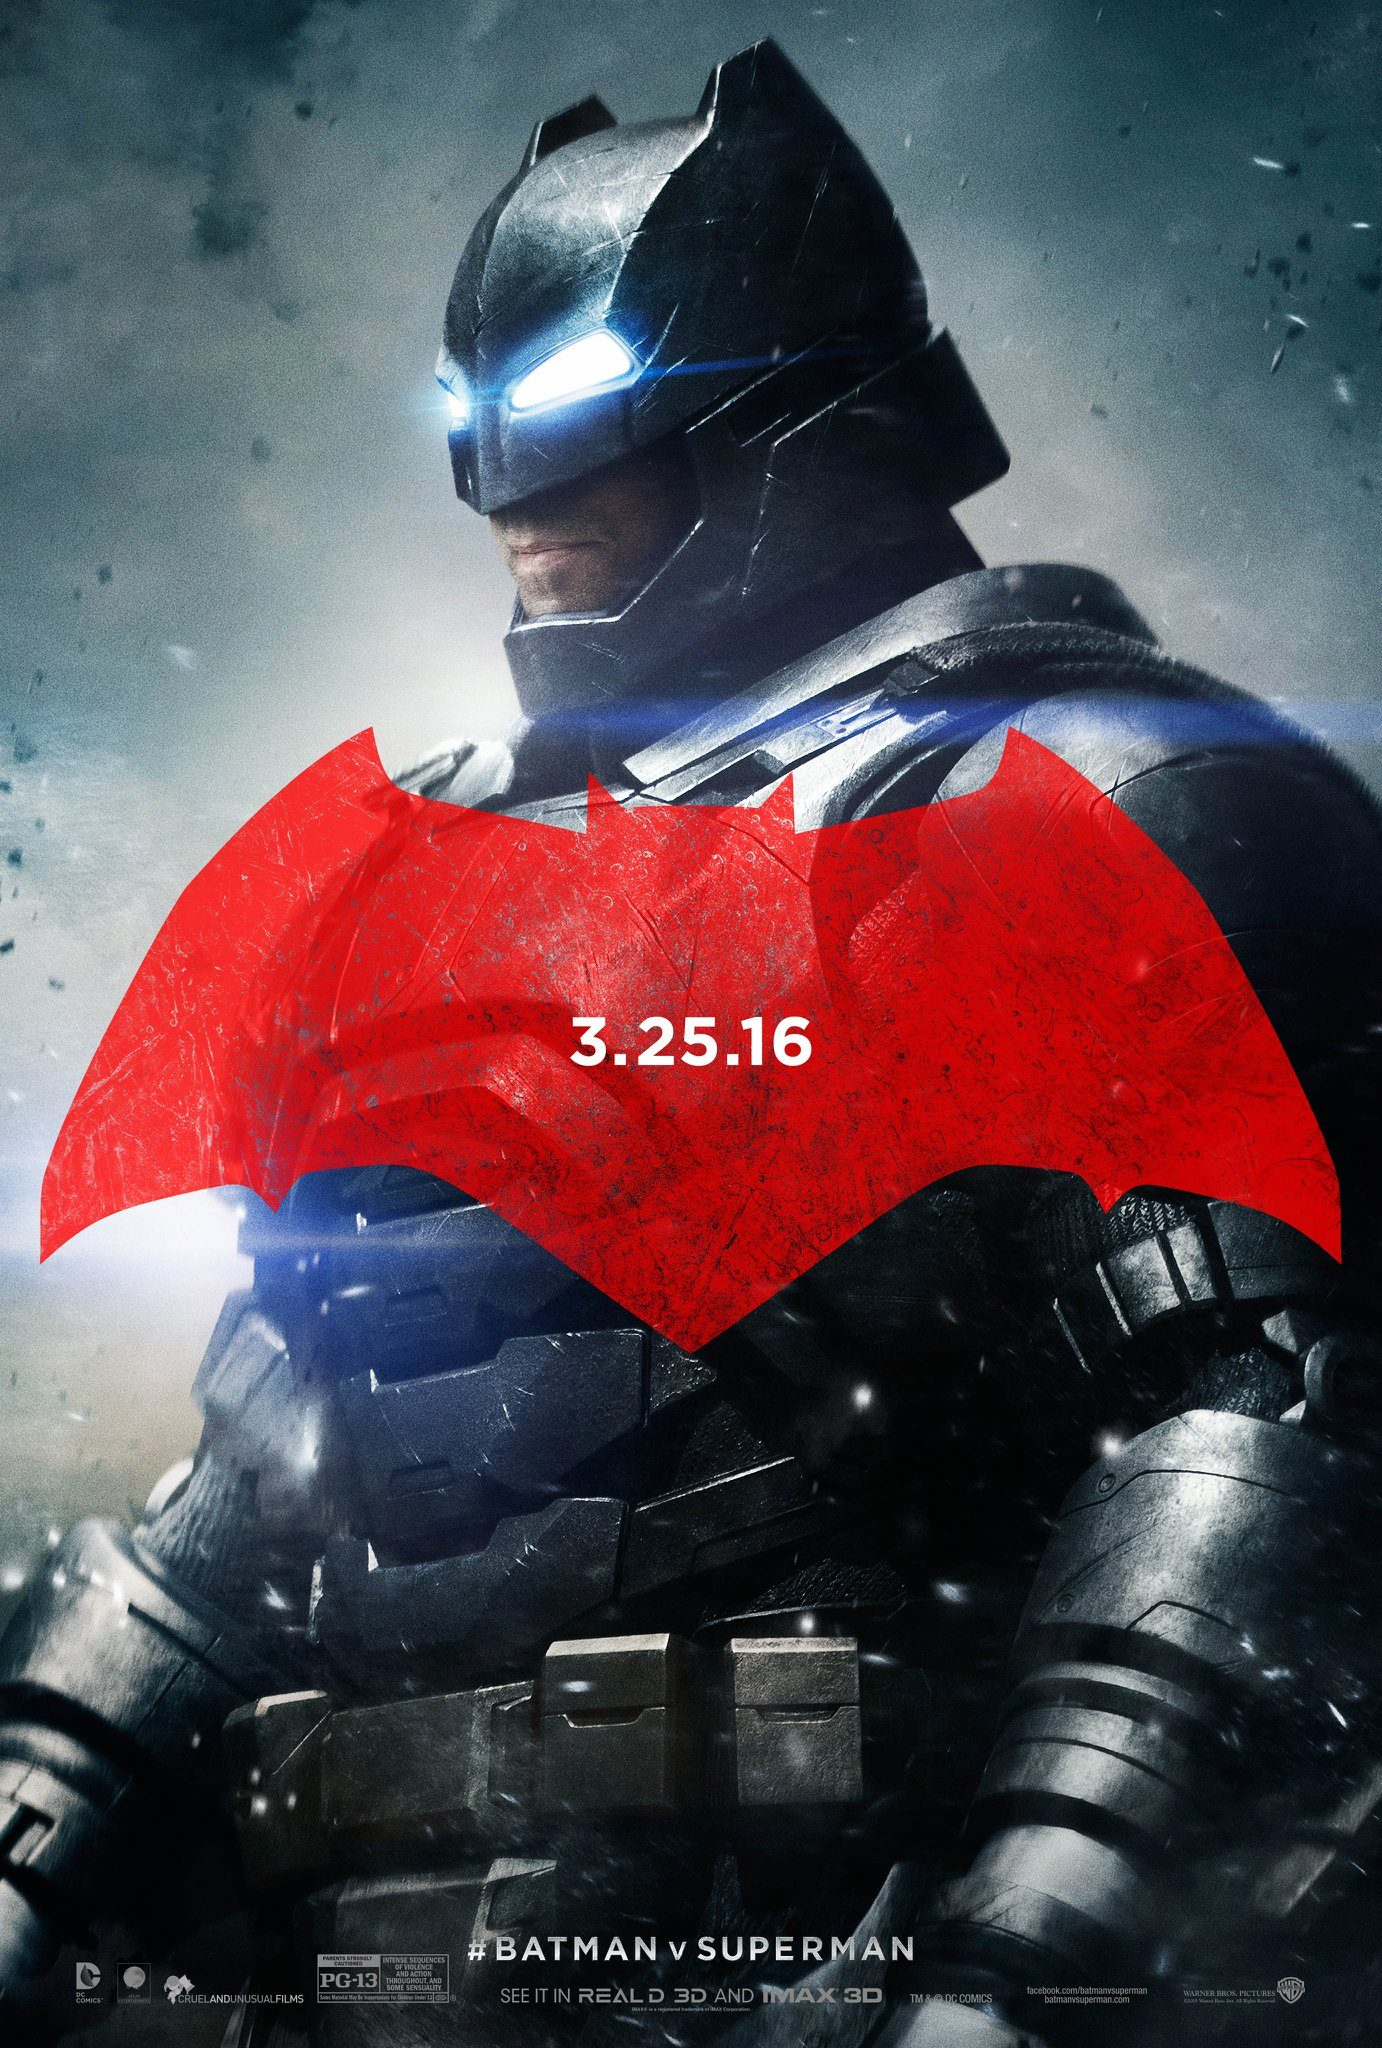 12365933 972834219457672 494602726406190890 O Look At That Armored Batsuit Functionality And Style